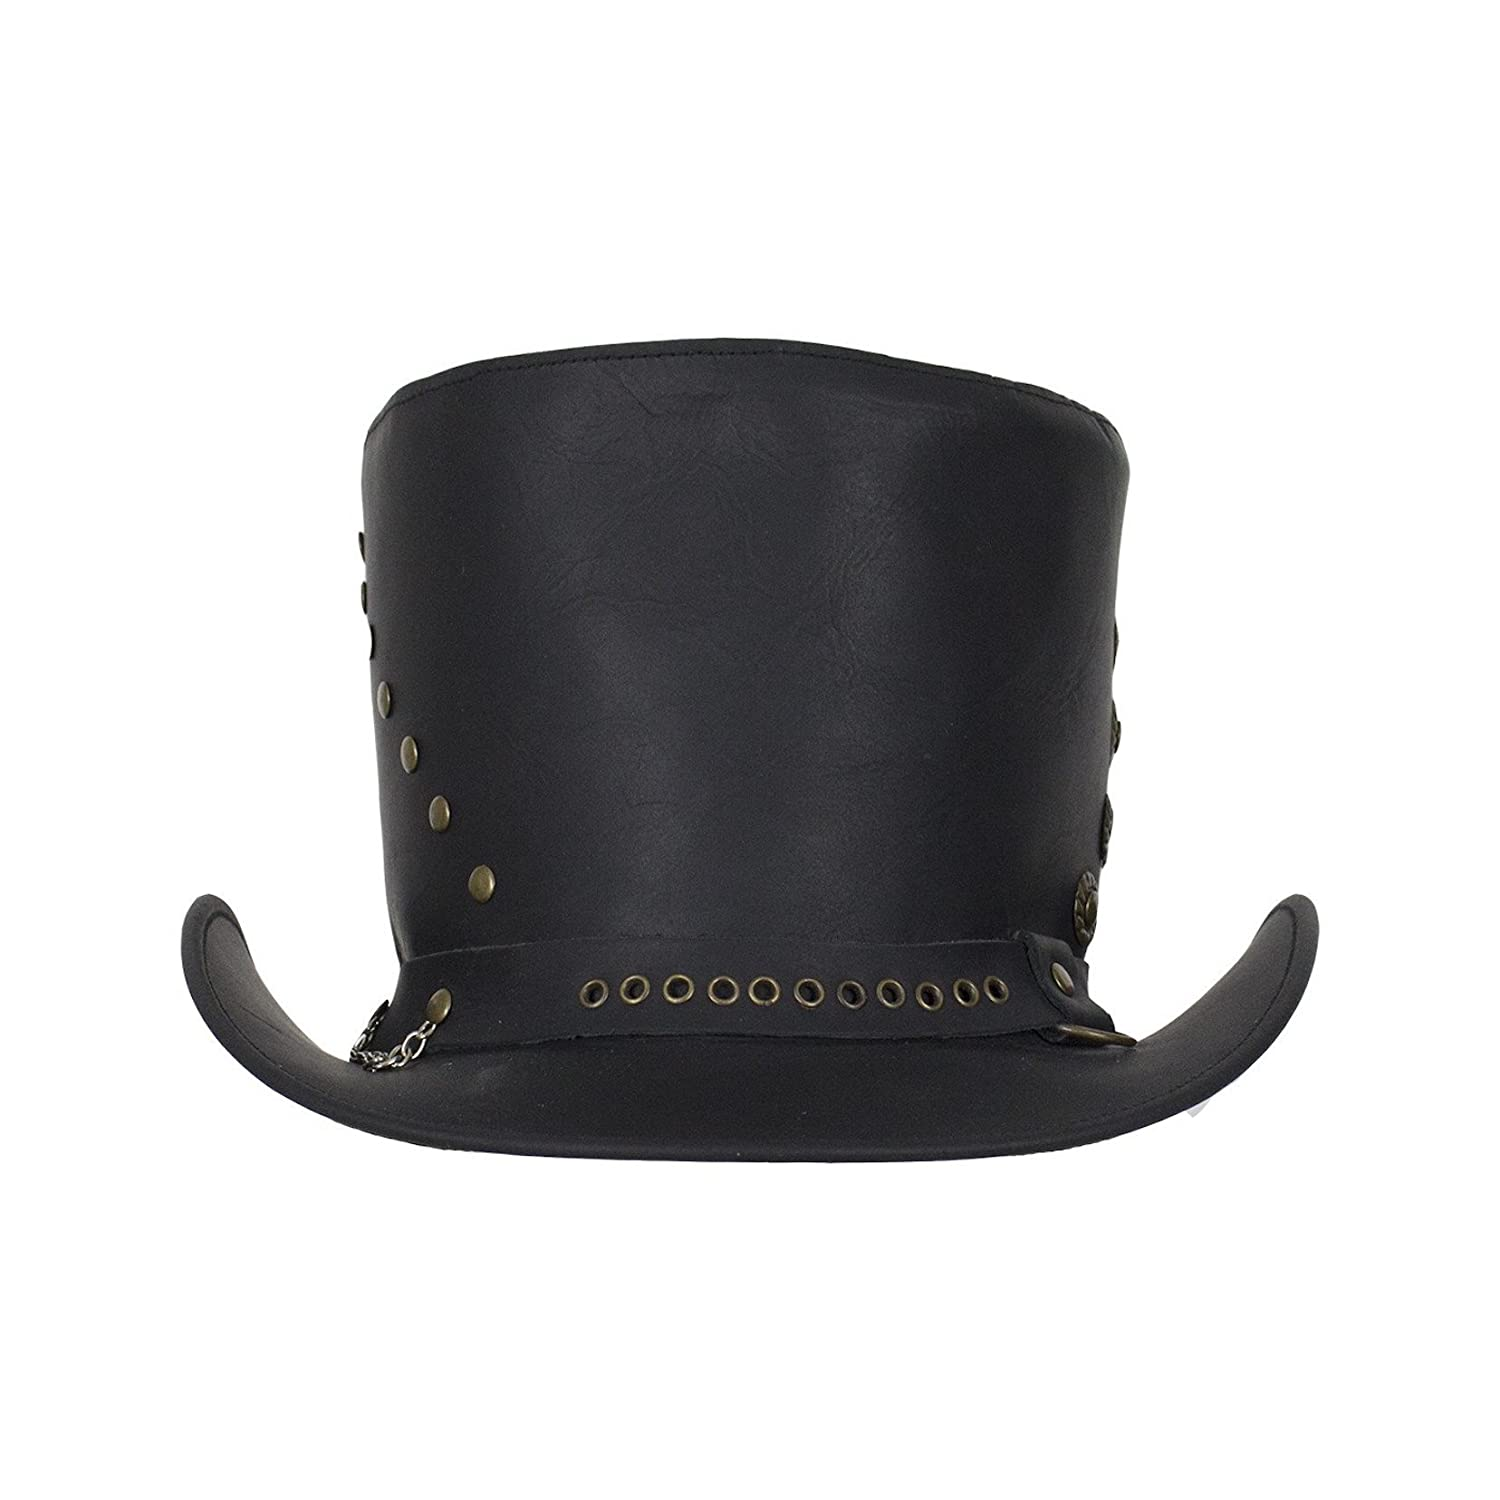 Genuine Black Leather Top Hat with Brass Studs